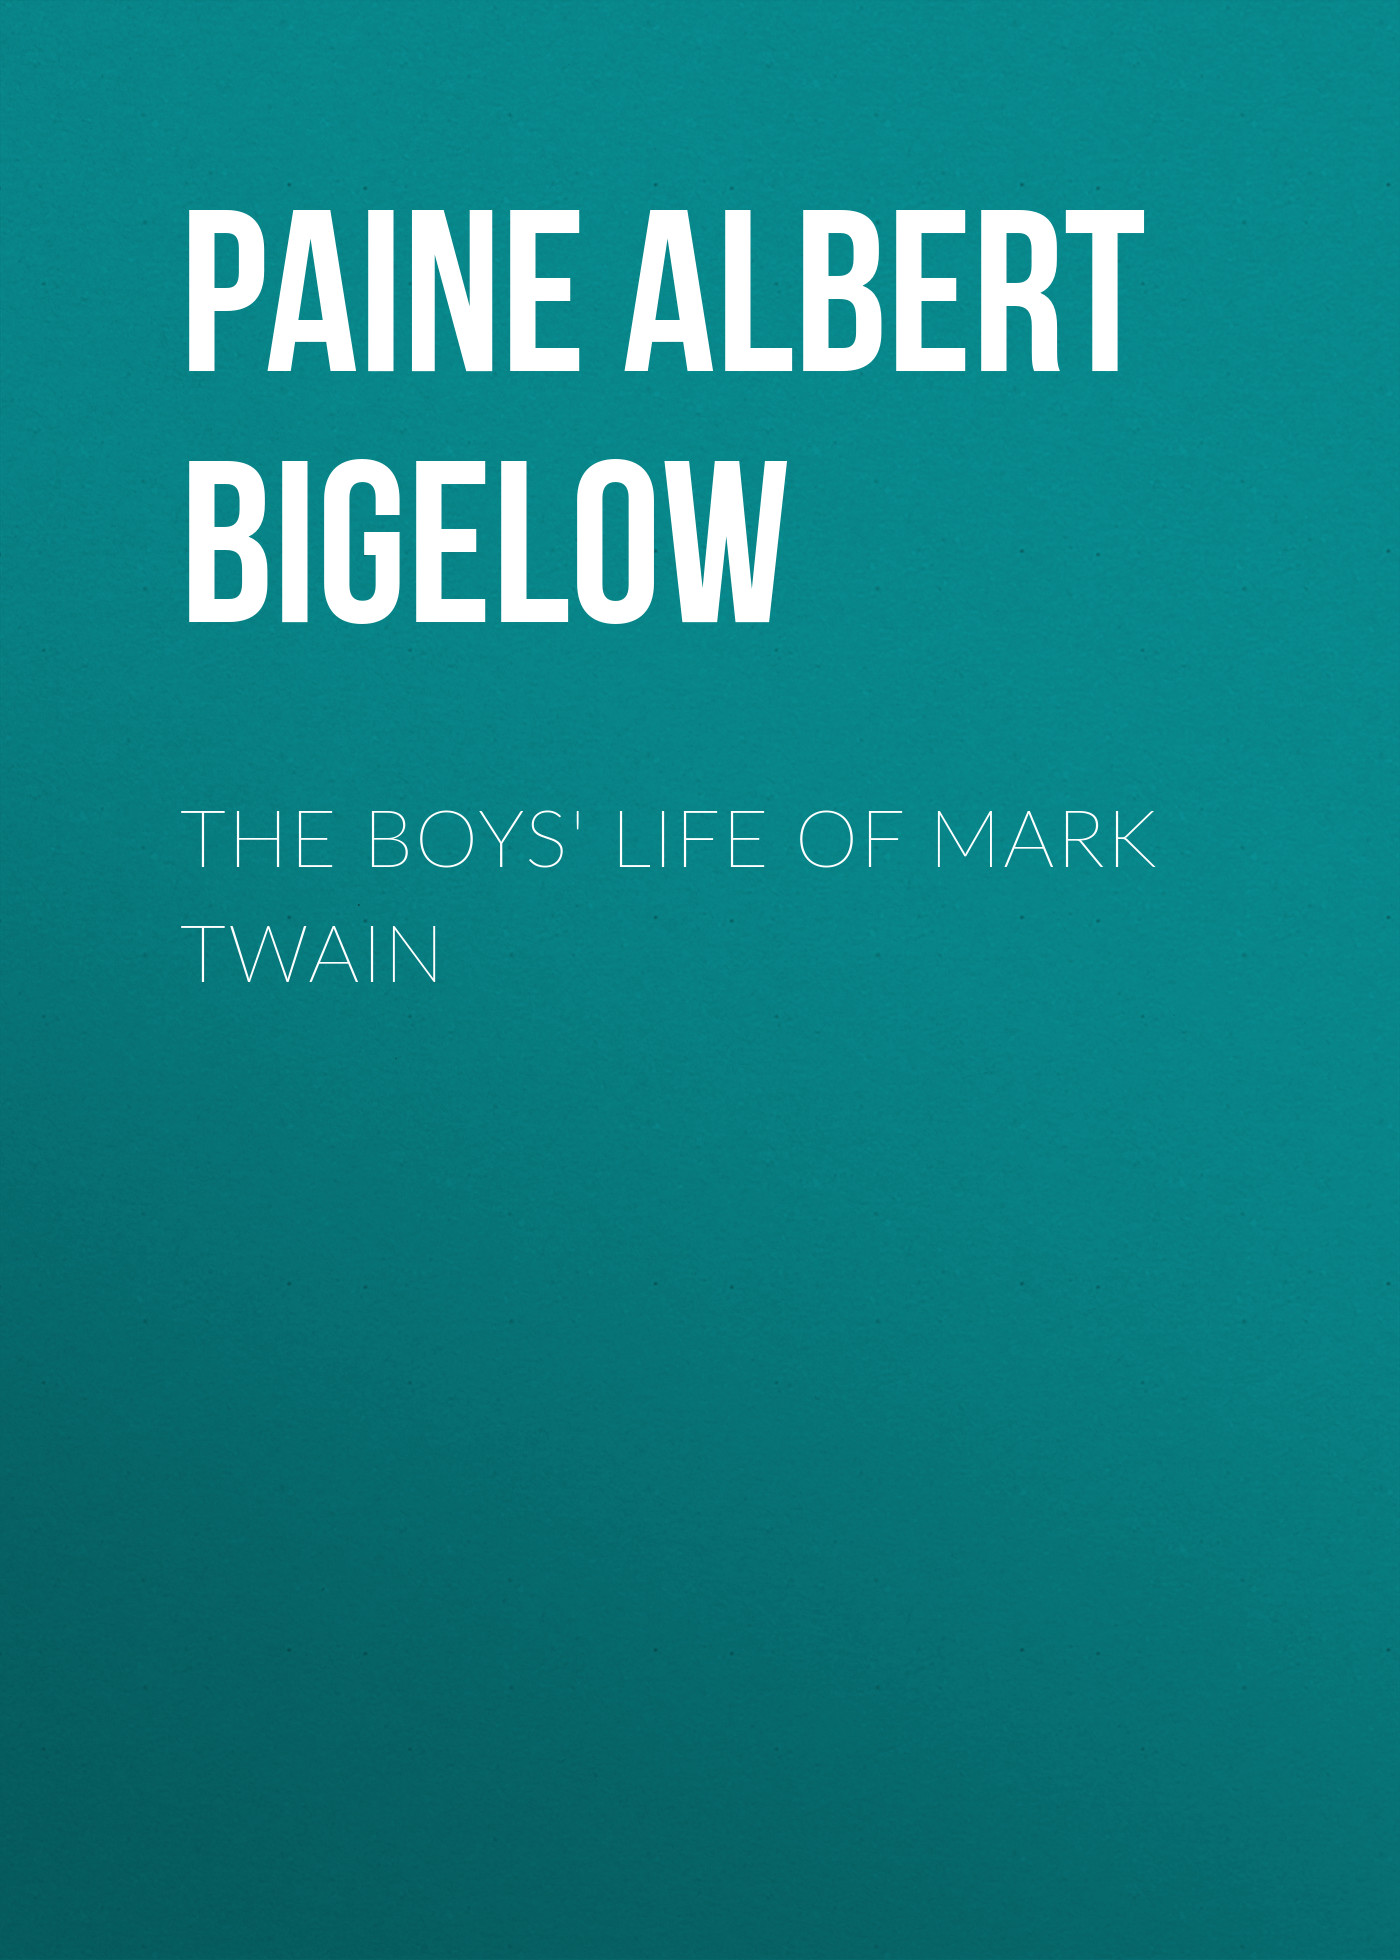 Paine Albert Bigelow The Boys' Life of Mark Twain купить недорого в Москве